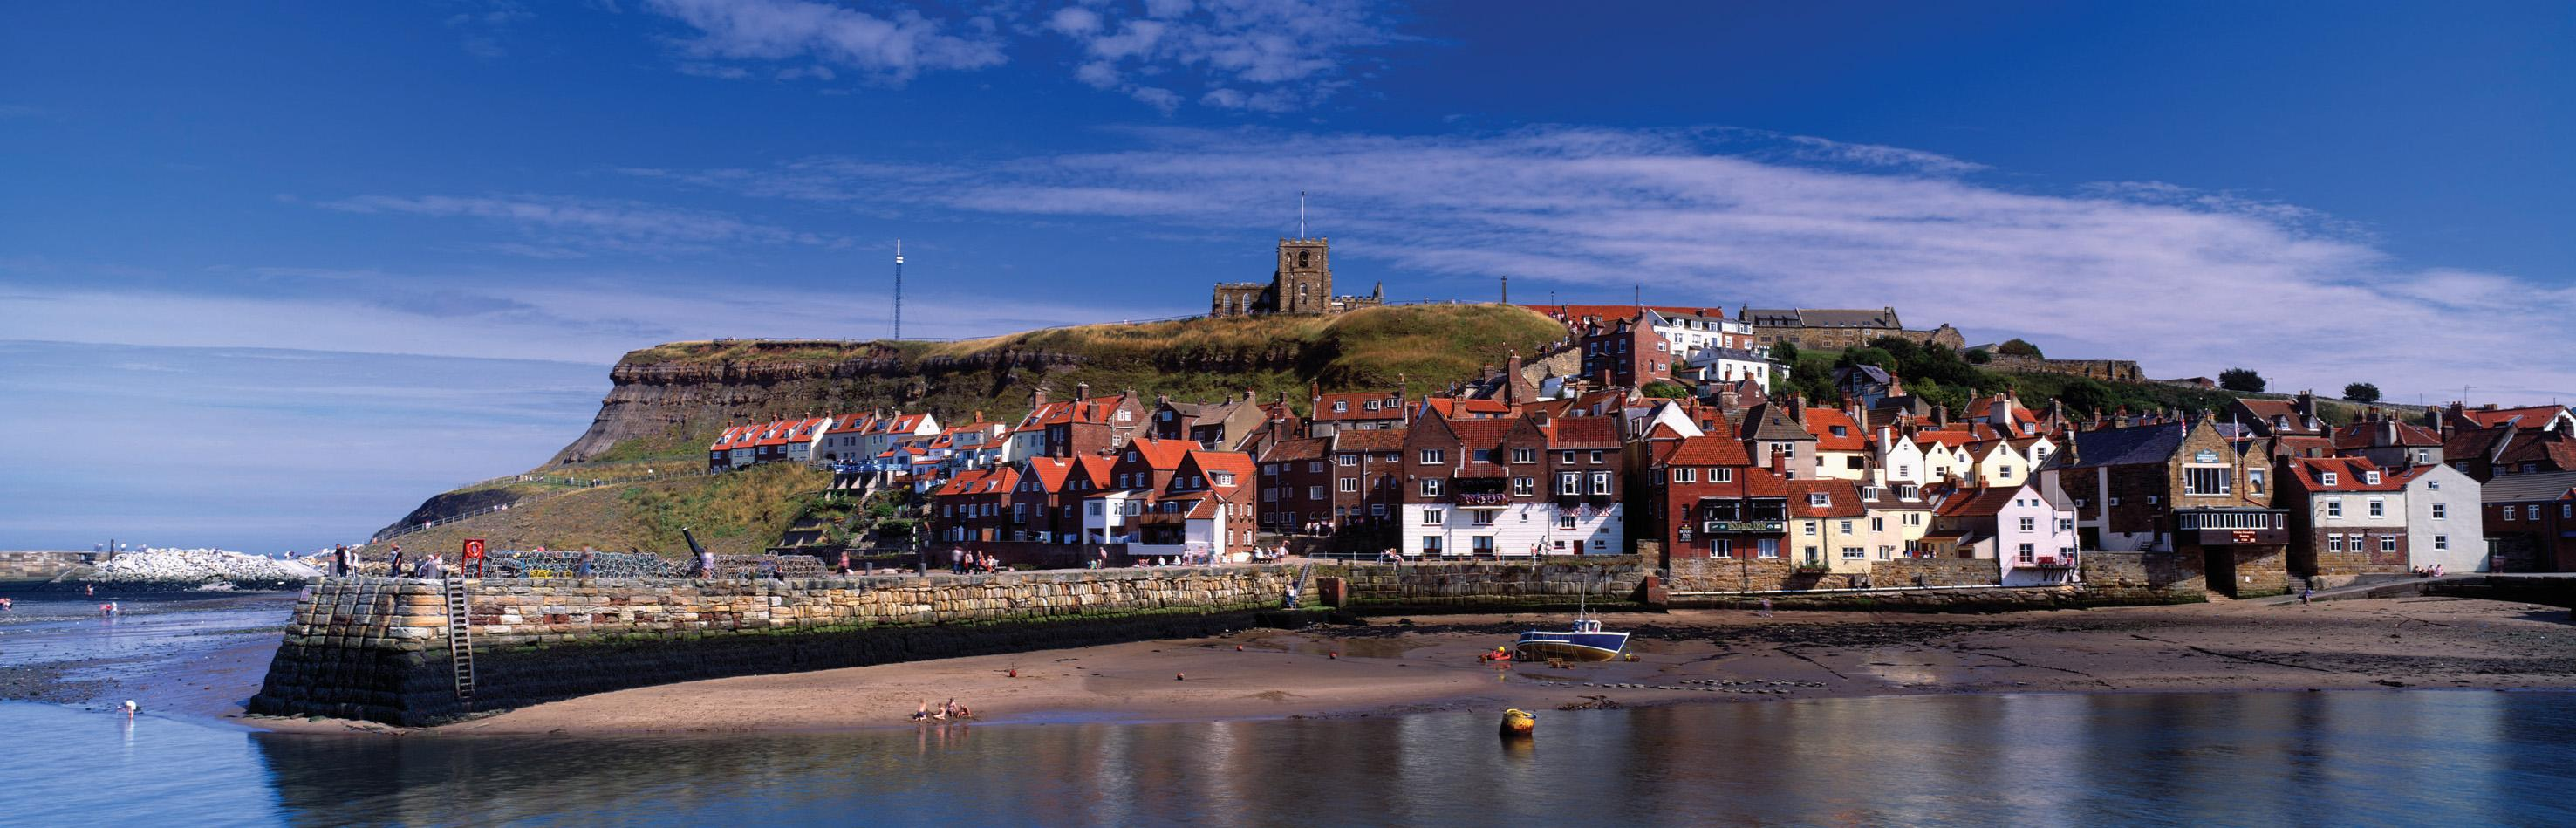 Picture of Whitby harbour - credit: Mark Denton Photographic